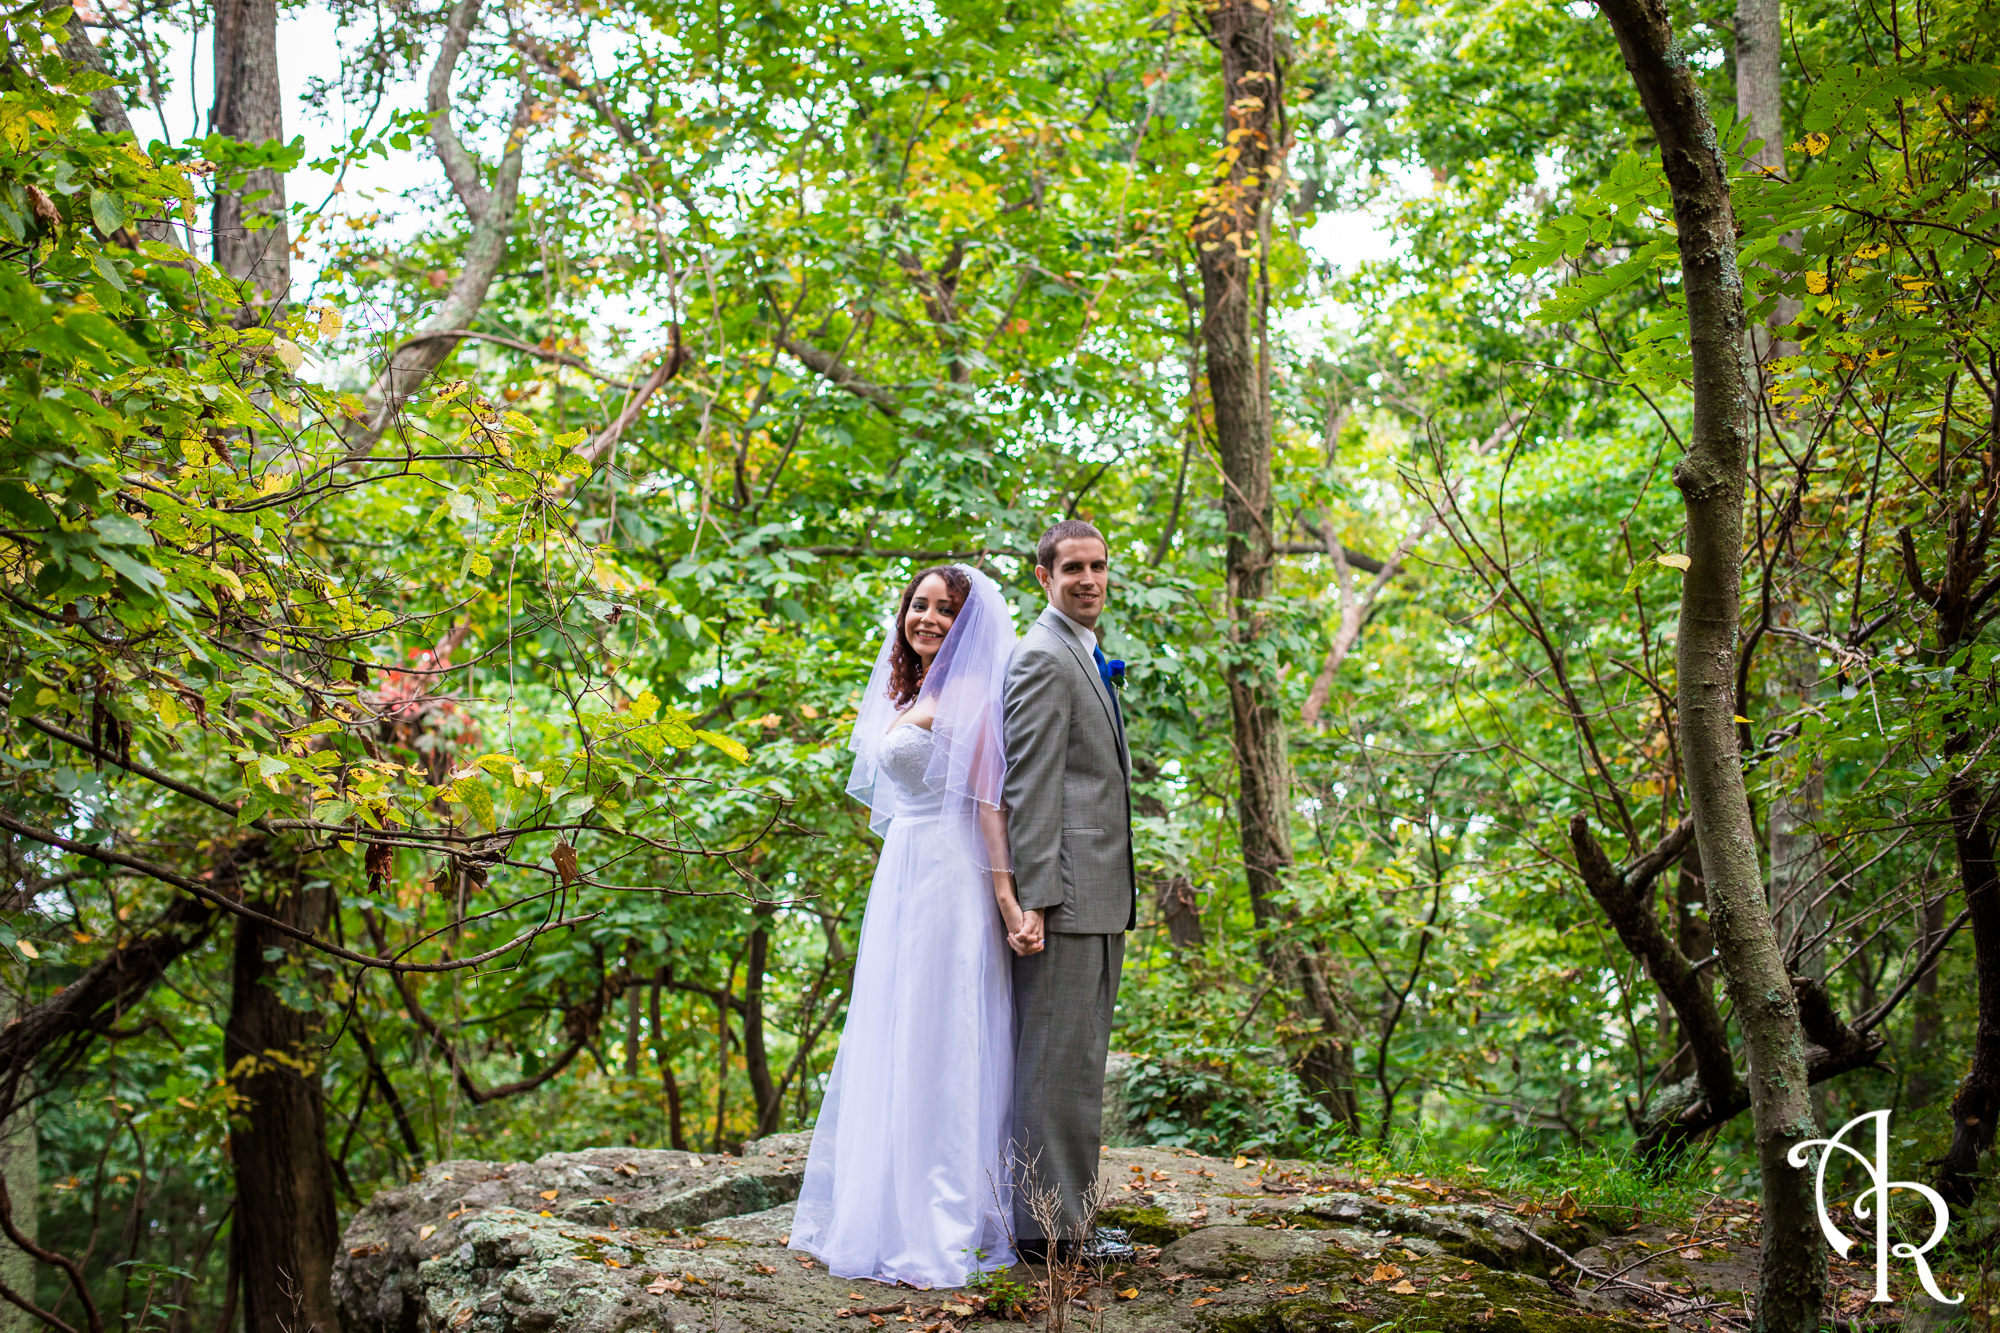 Chicago Absolutely affordable wedding photography